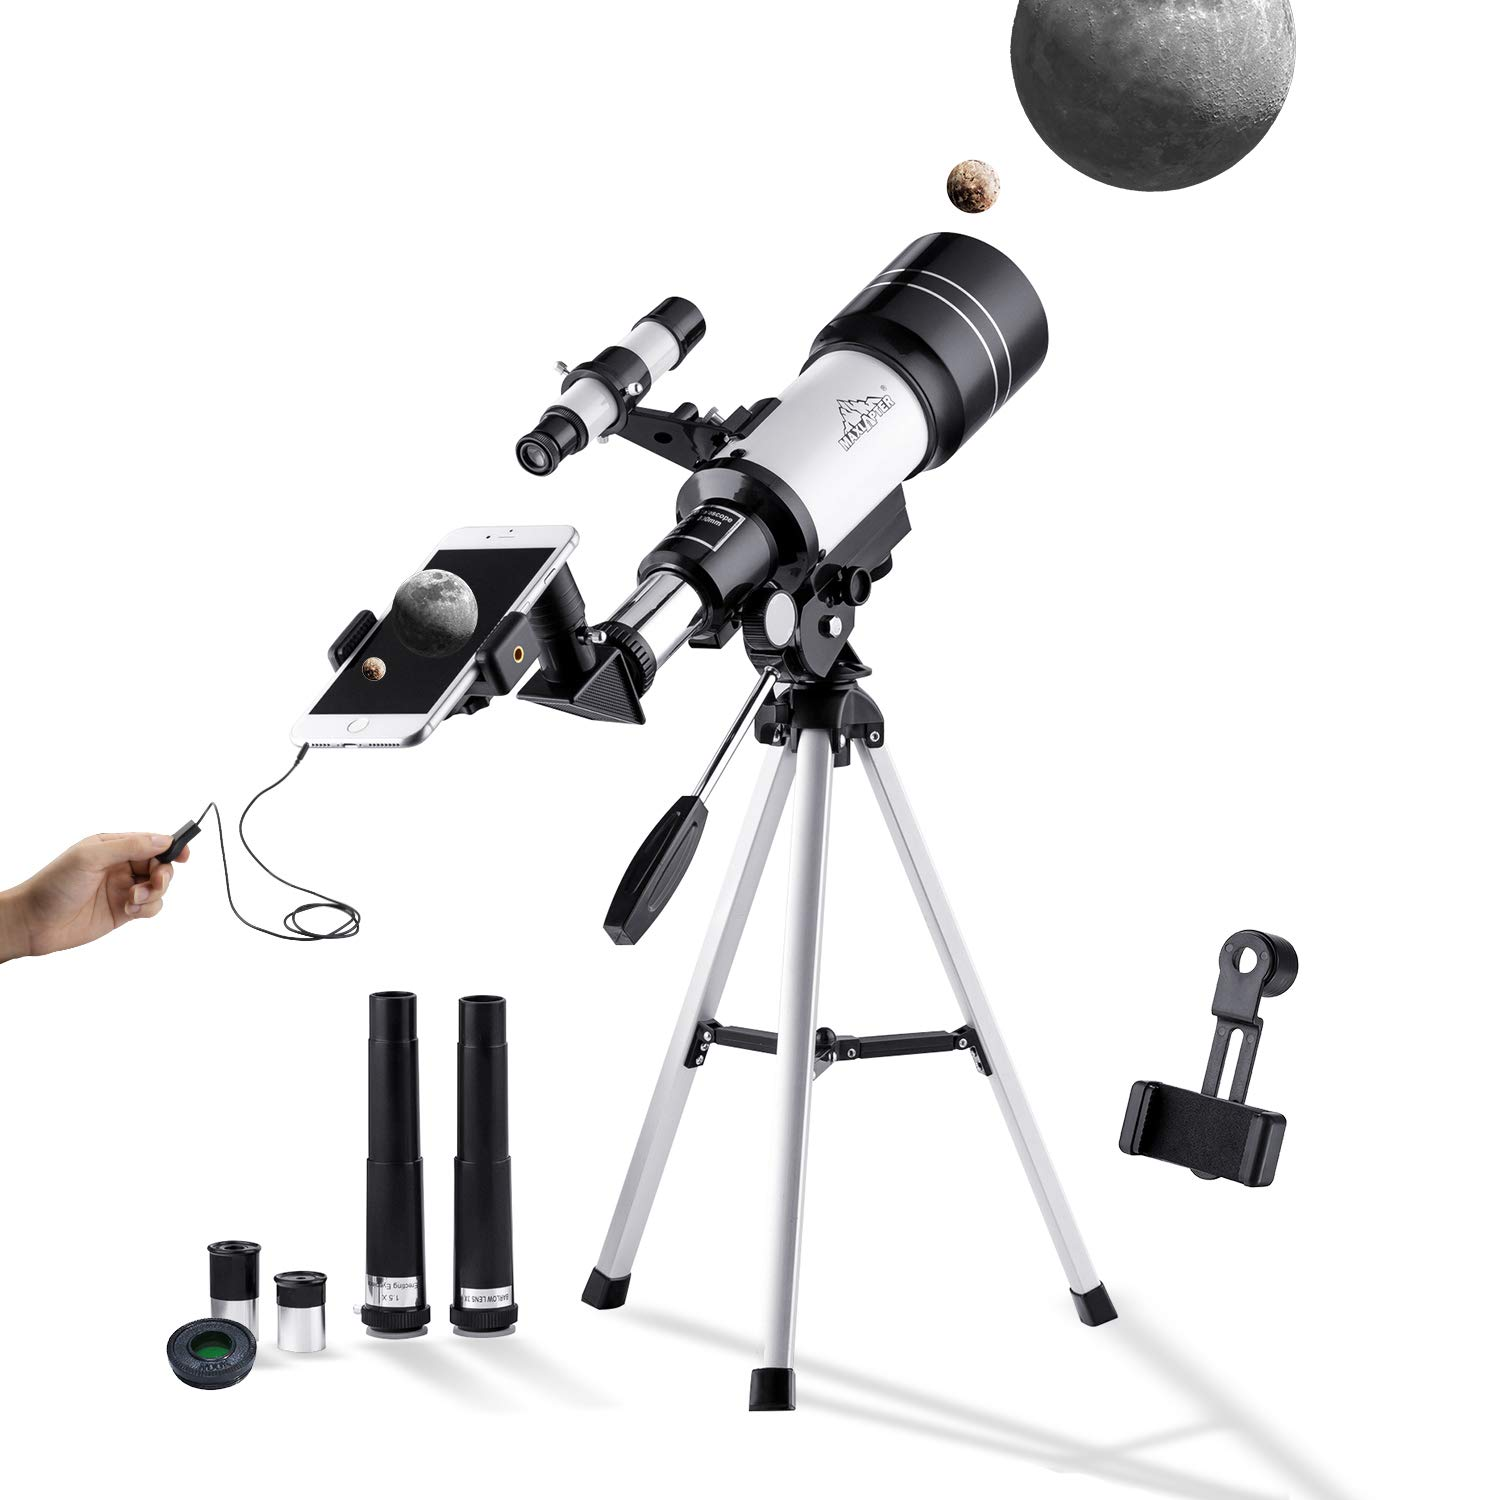 150X Astronomy Monocular Telescope 300/70mm for Kids with Finder Scope, Tripod and H6mm & H20mm Eyepiece, Come with Phone Adapter, Wire Shutter, Moon Filter and Backpack, Fit for Stargazing & Birding MAXLAPTER WR854